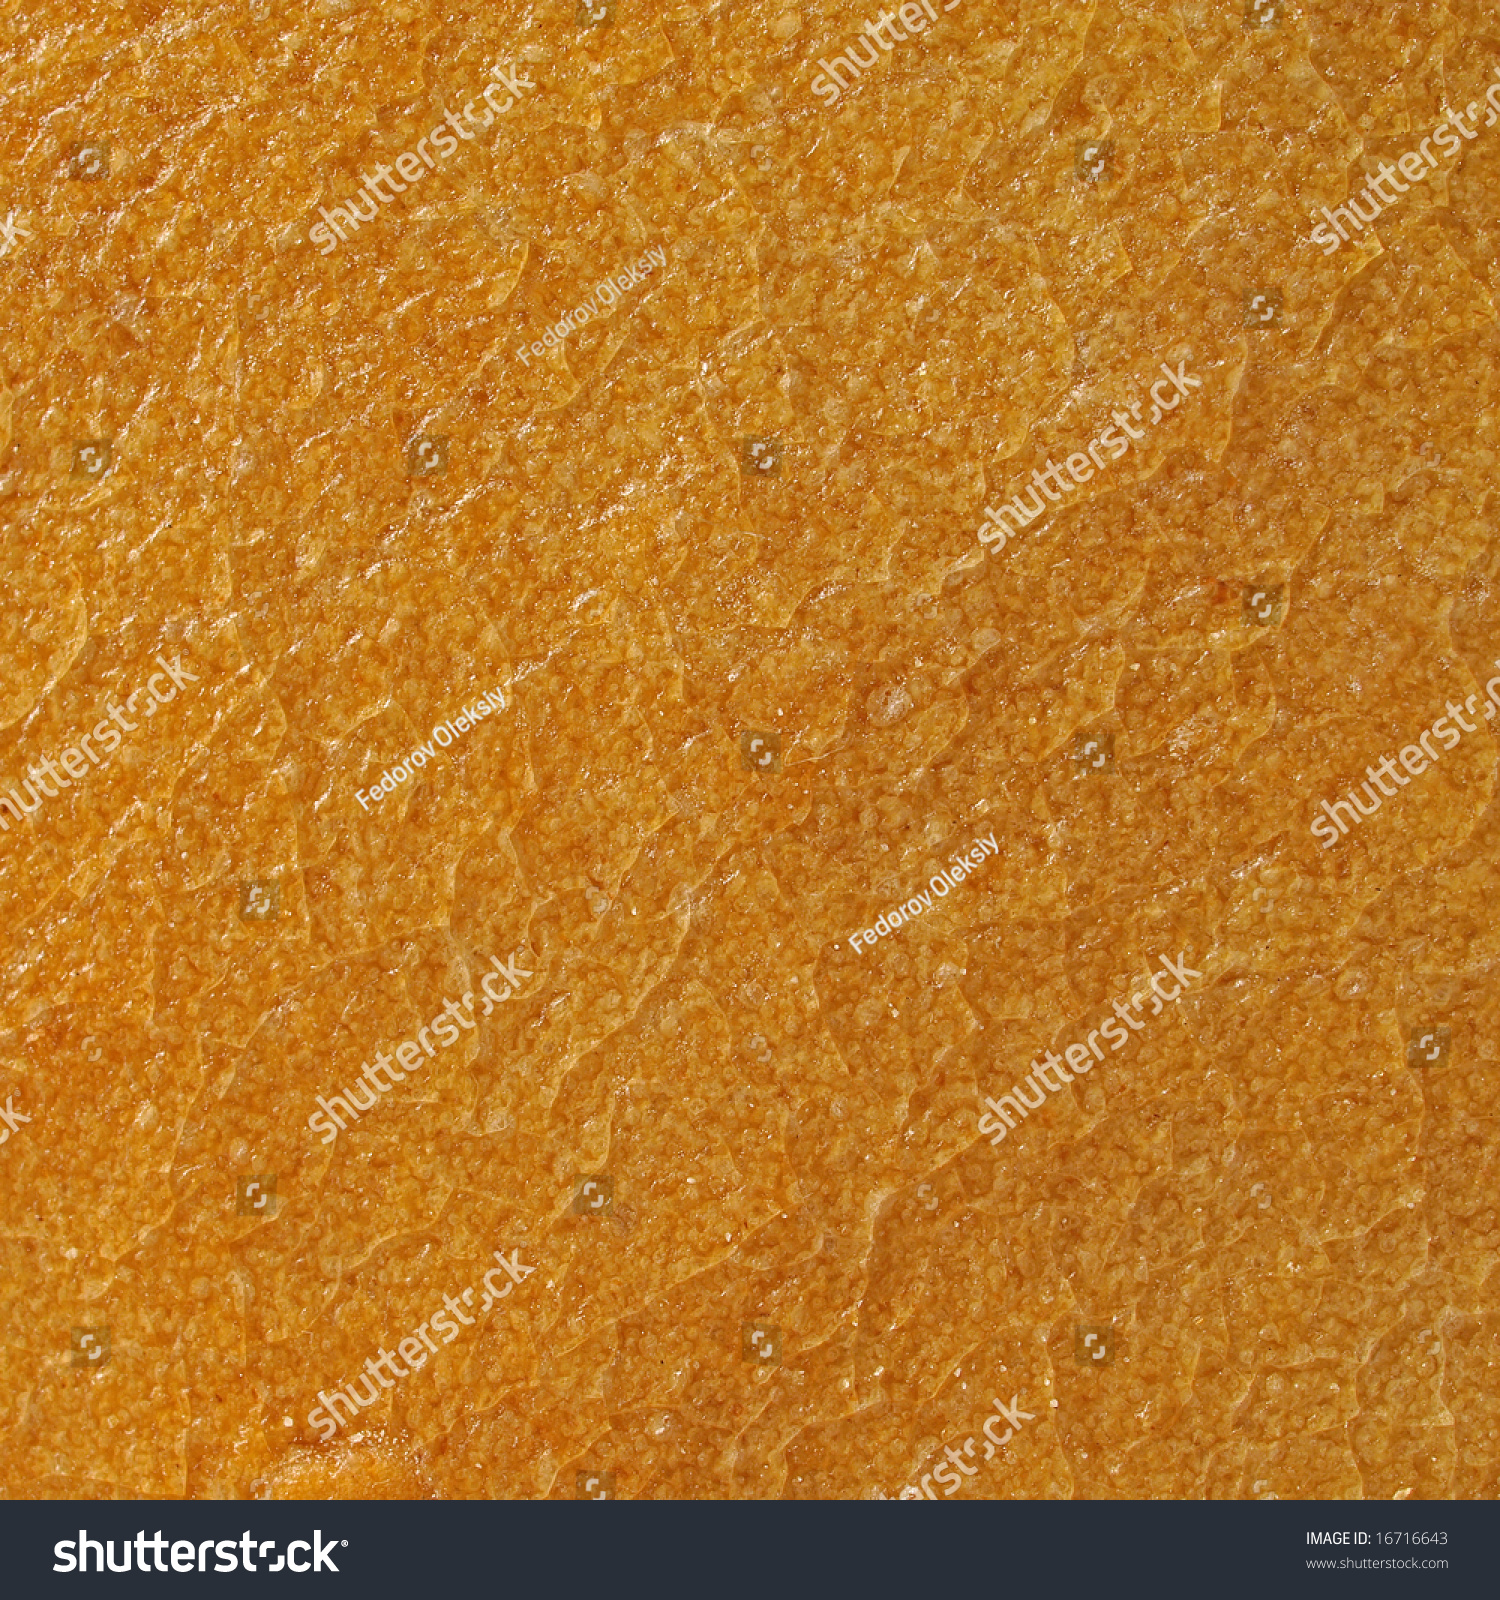 French bread crust texture